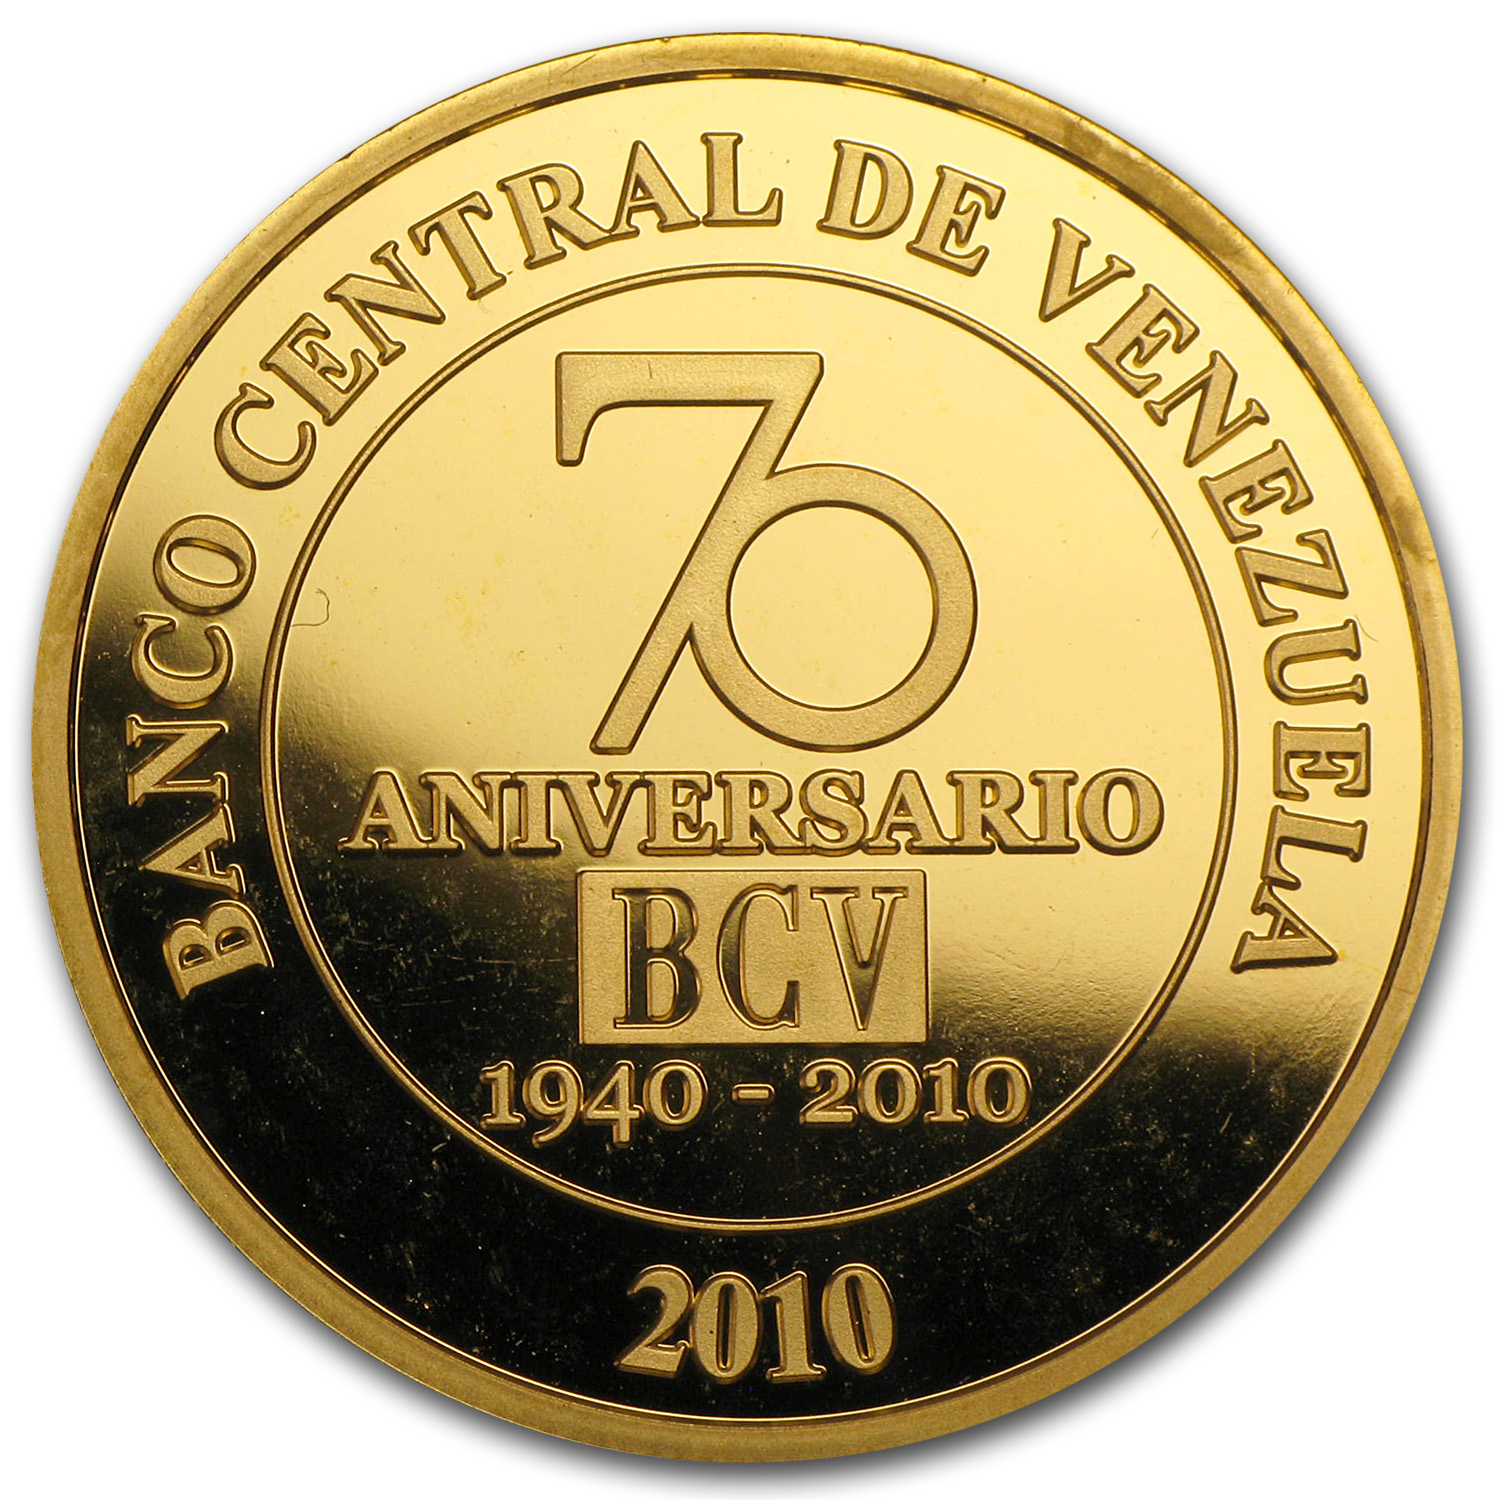 2010 Venezuela Proof Gold 50 Bolivares Central Bank